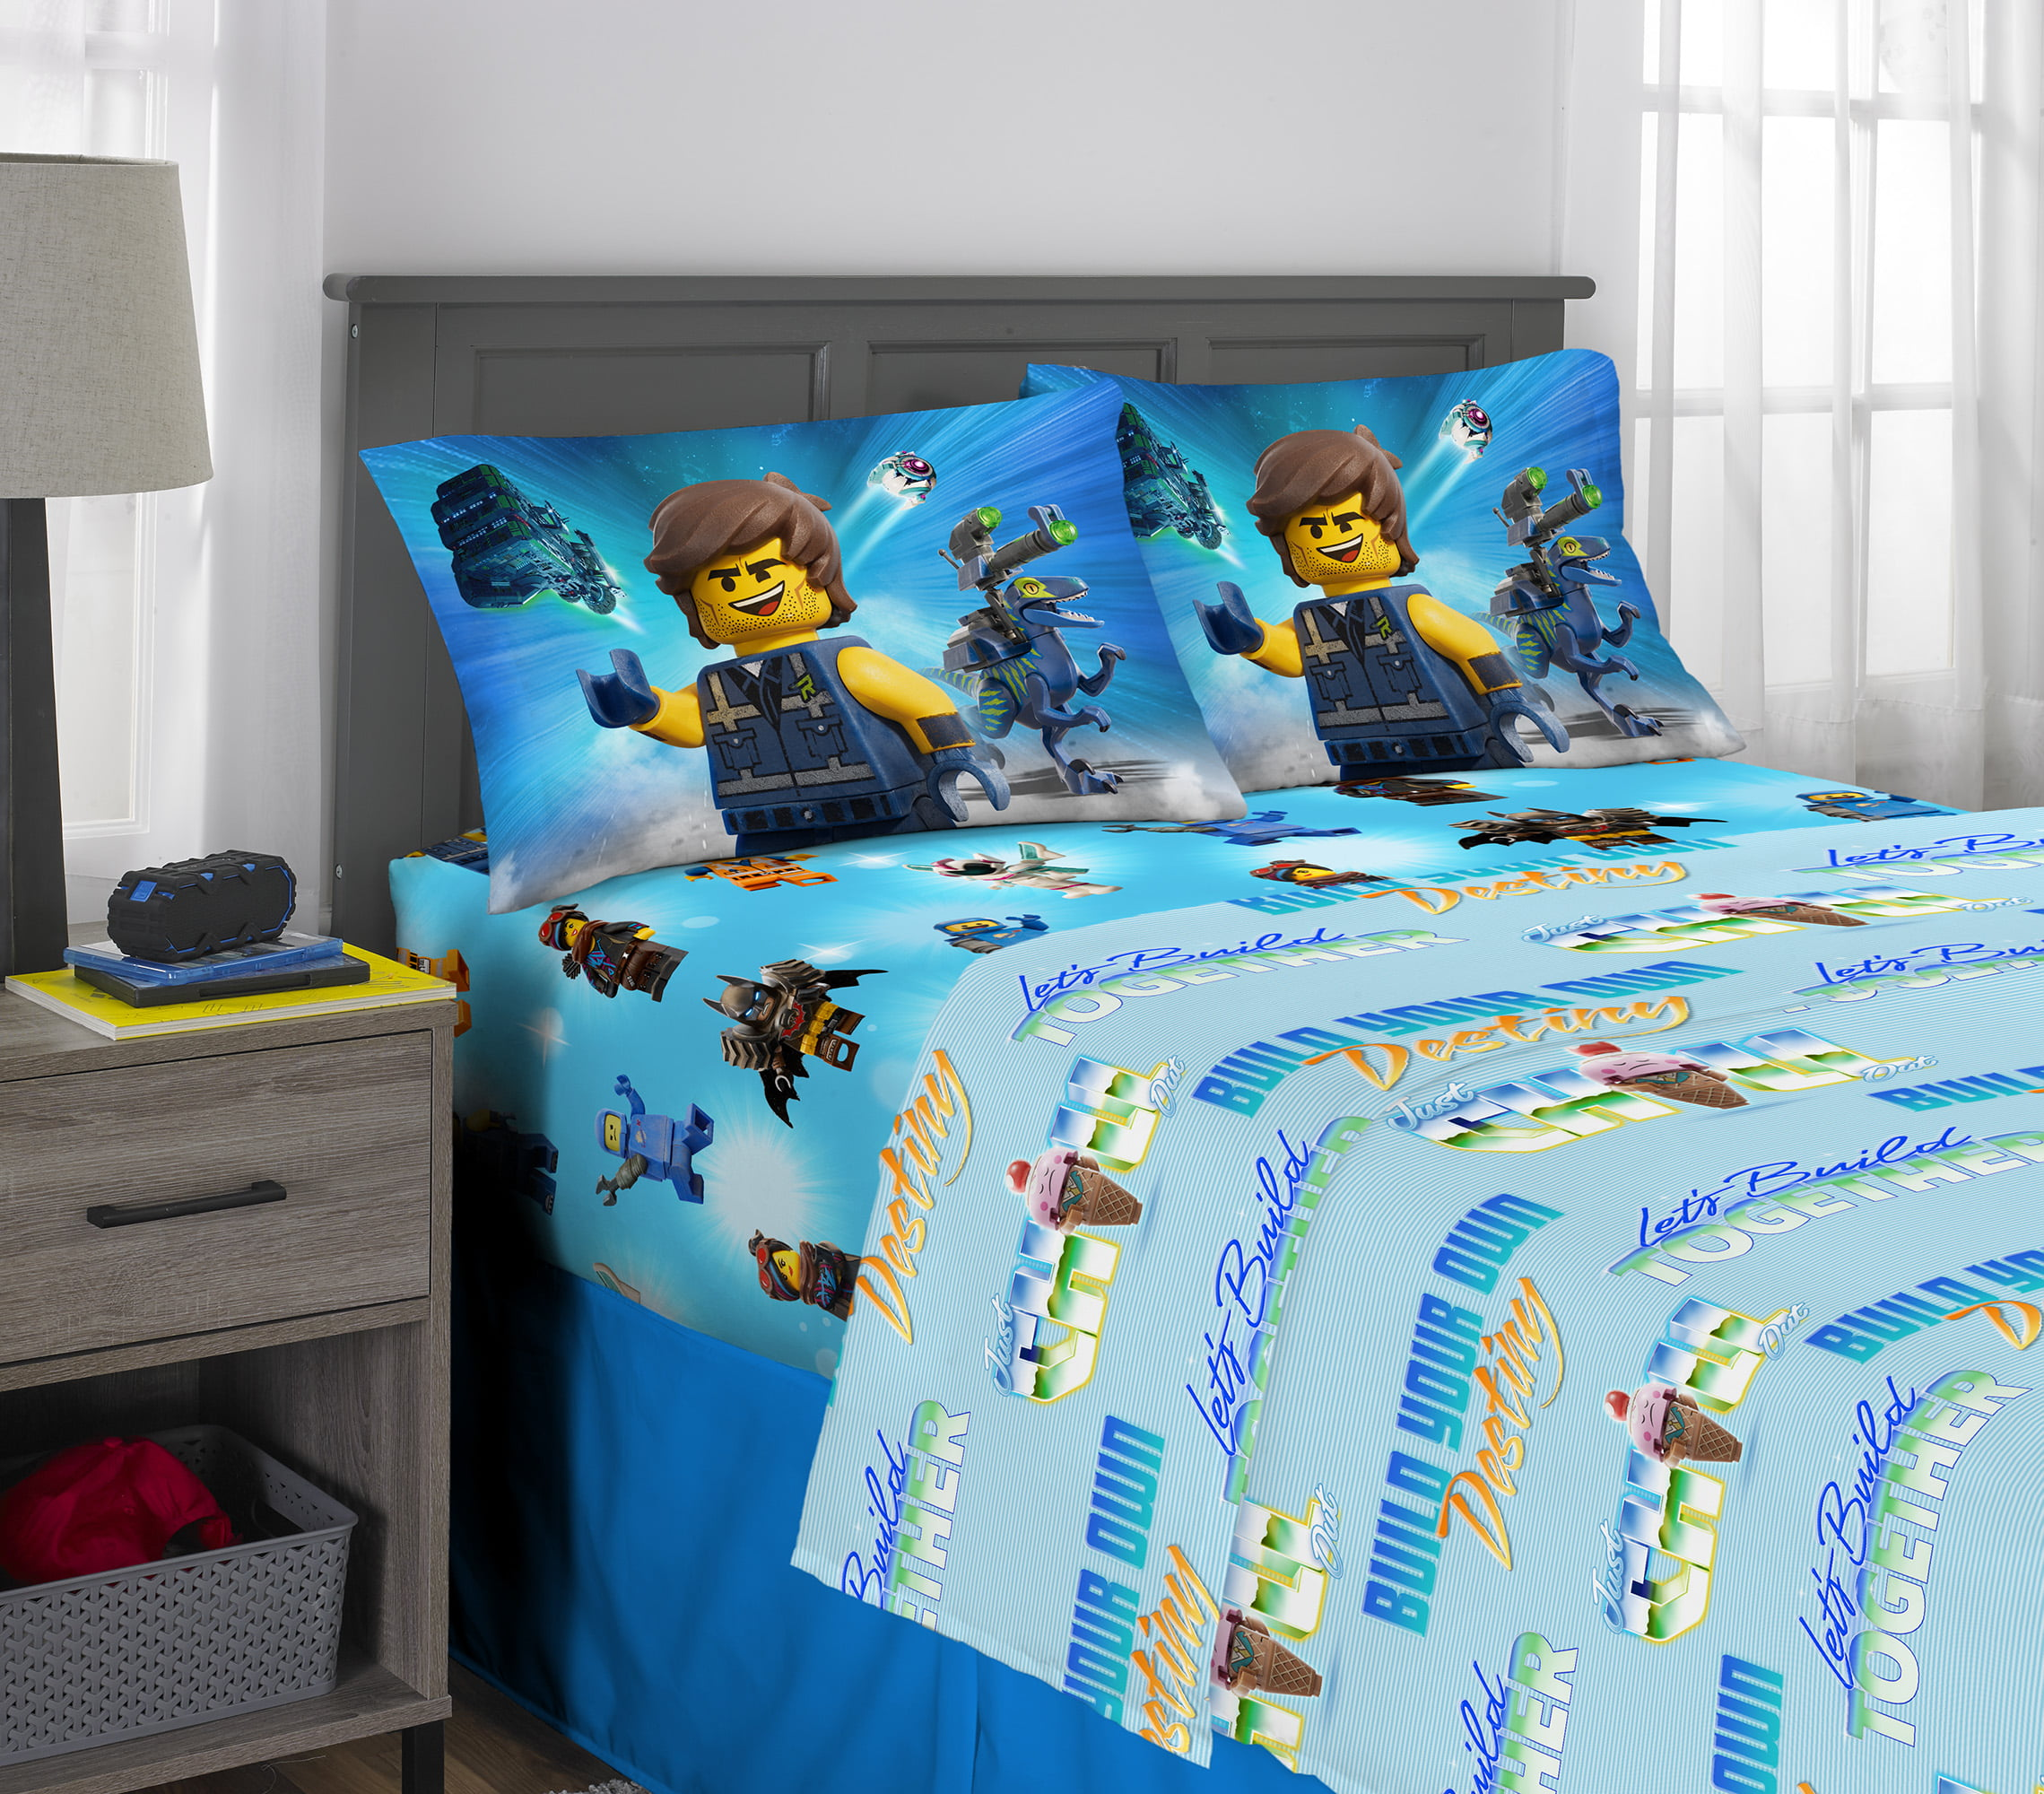 Details about  /Lego Movie 2 Twin Sheet Set 1 Flat /& 1 Fitted Sheet With 1 Standard Pillowcase